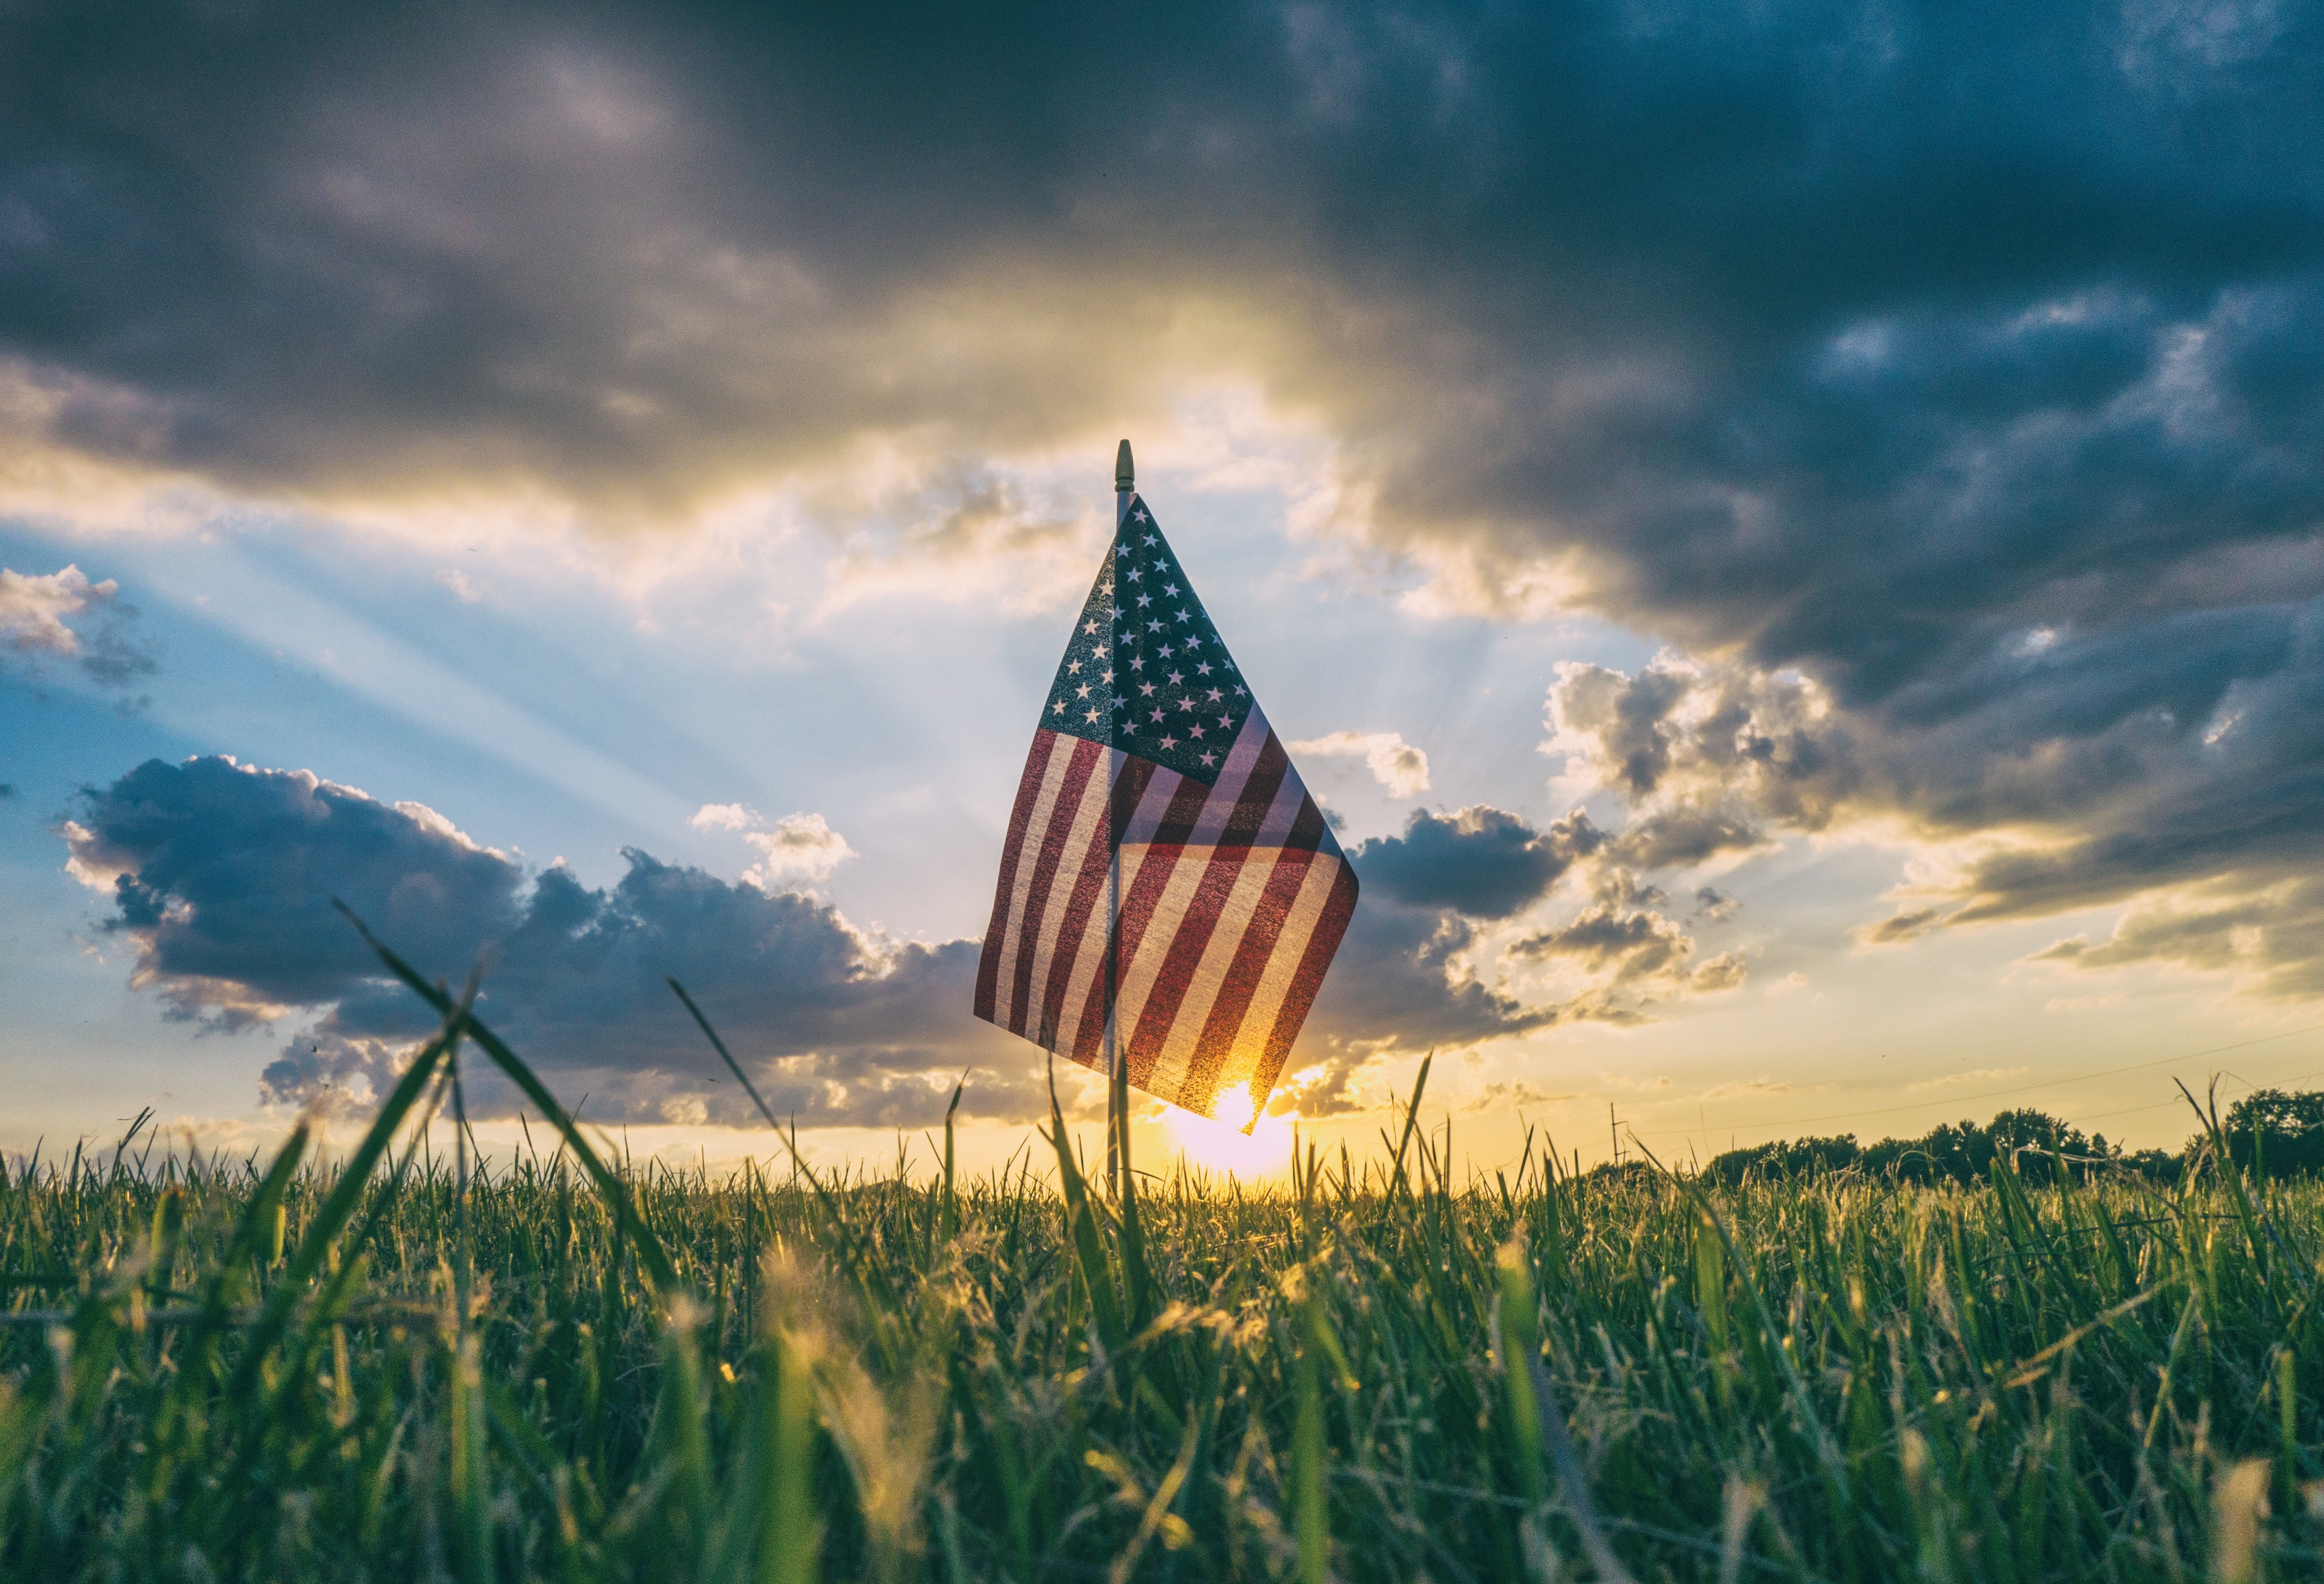 An American flag in a field at sunset.